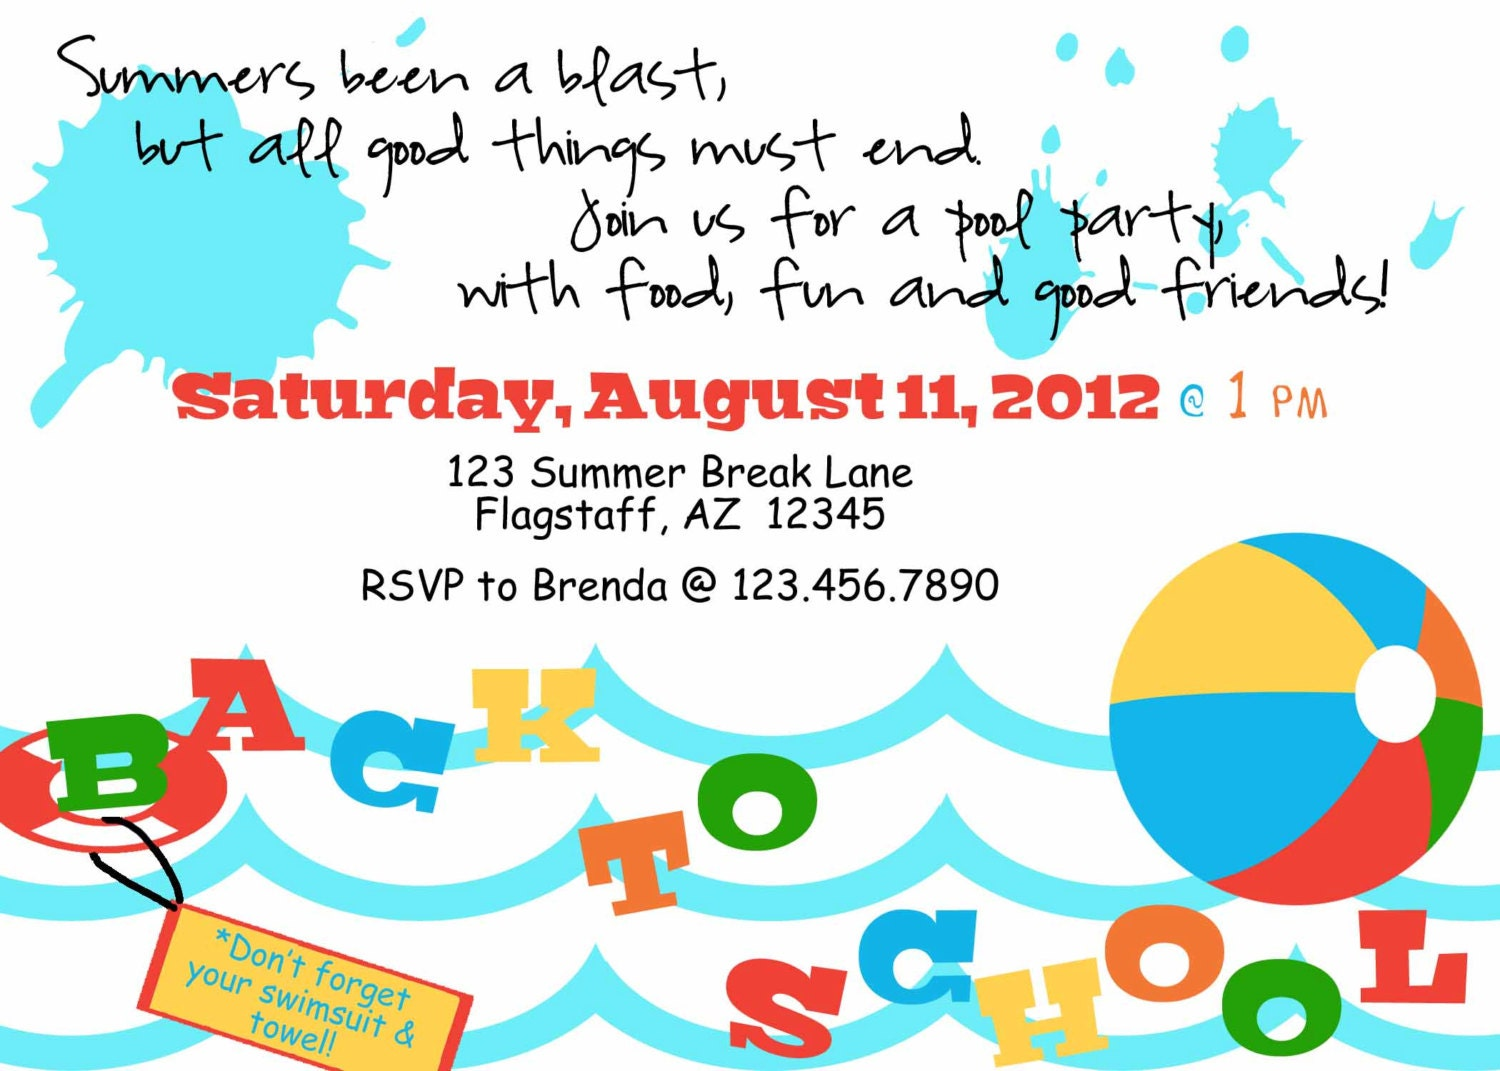 invitation text for party